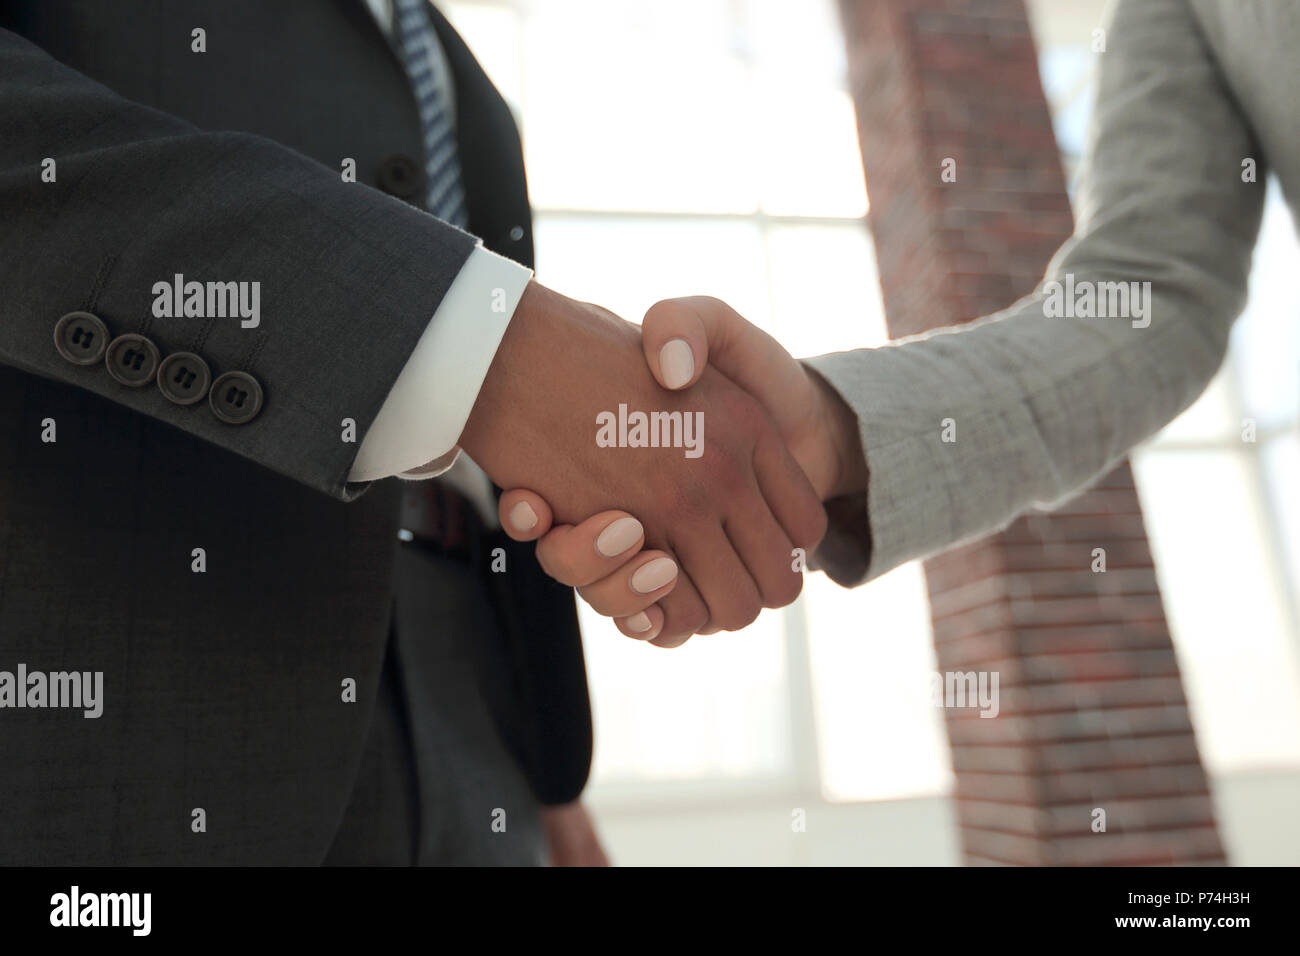 Business people shaking hands isolated on white background - Stock Image